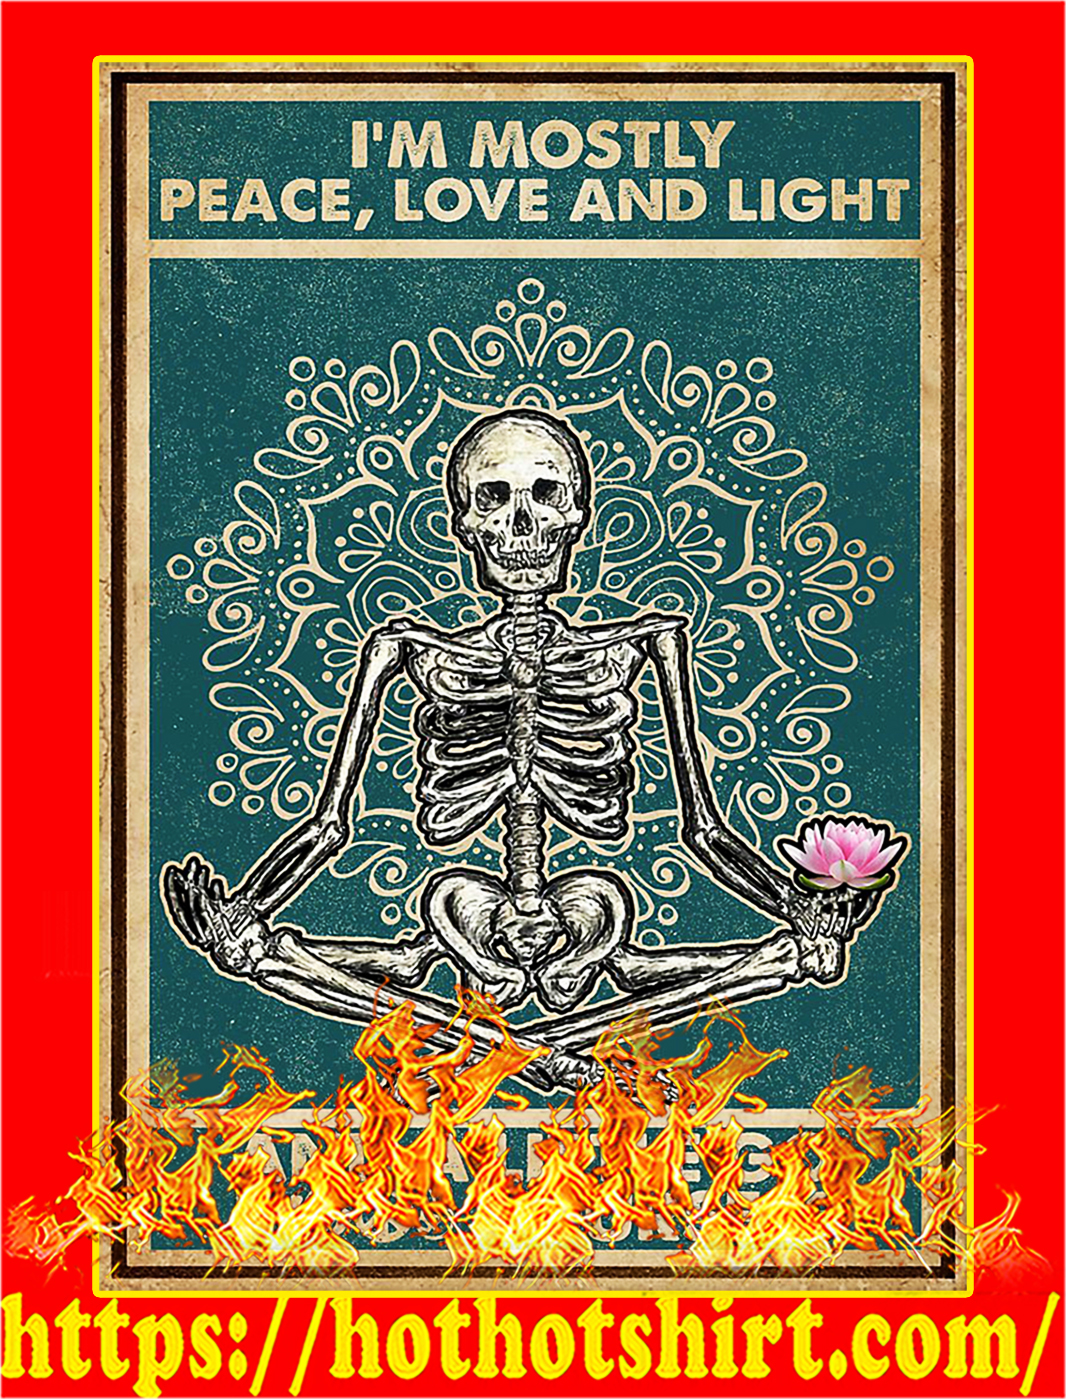 I'm mostly peace love and light and a little go fuck yourself poster - A1